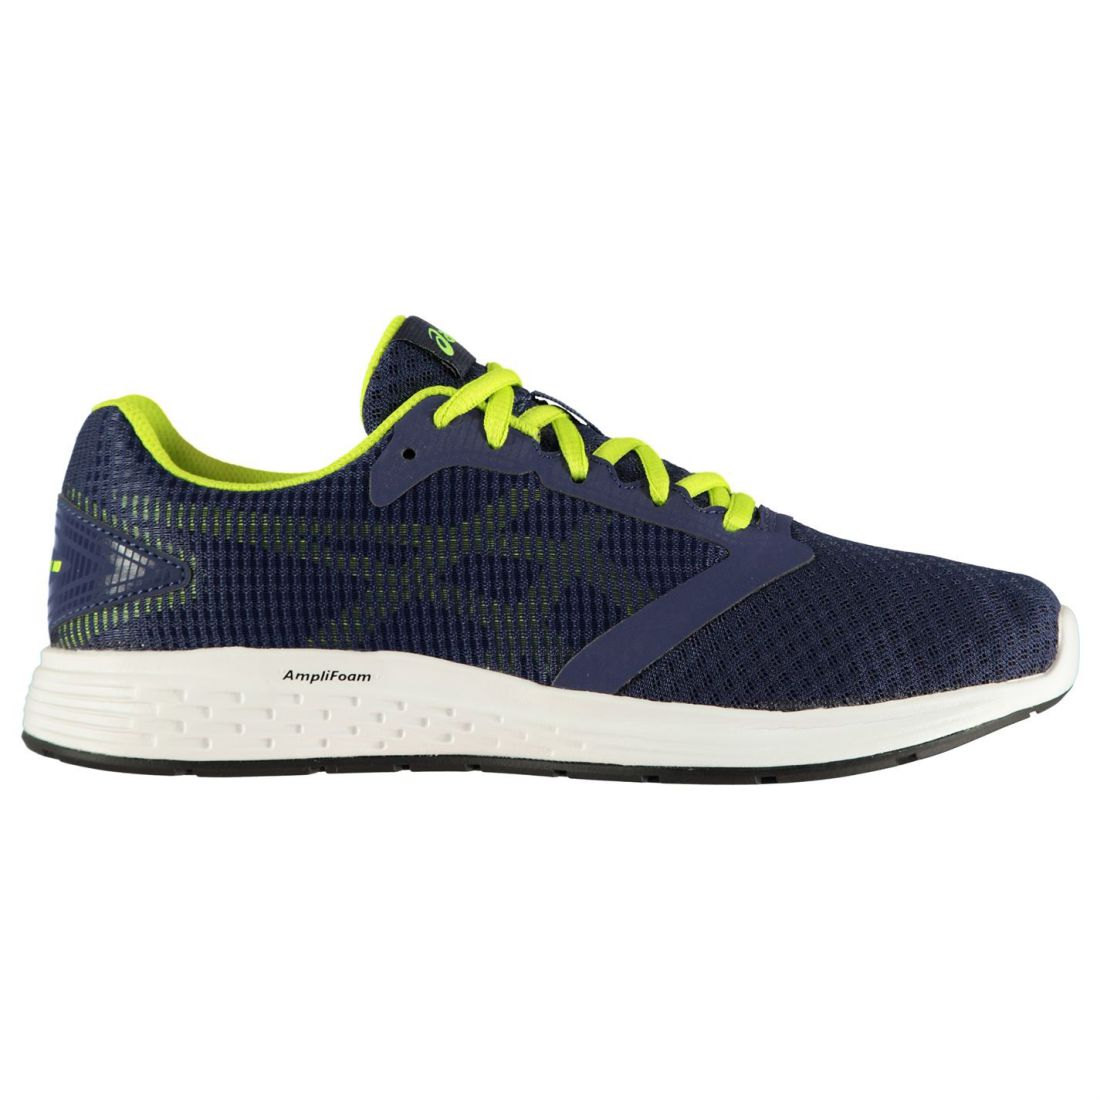 Asics Patriot 10 Sneakers Mens Gents Runners Laces Fastened Mesh Upper